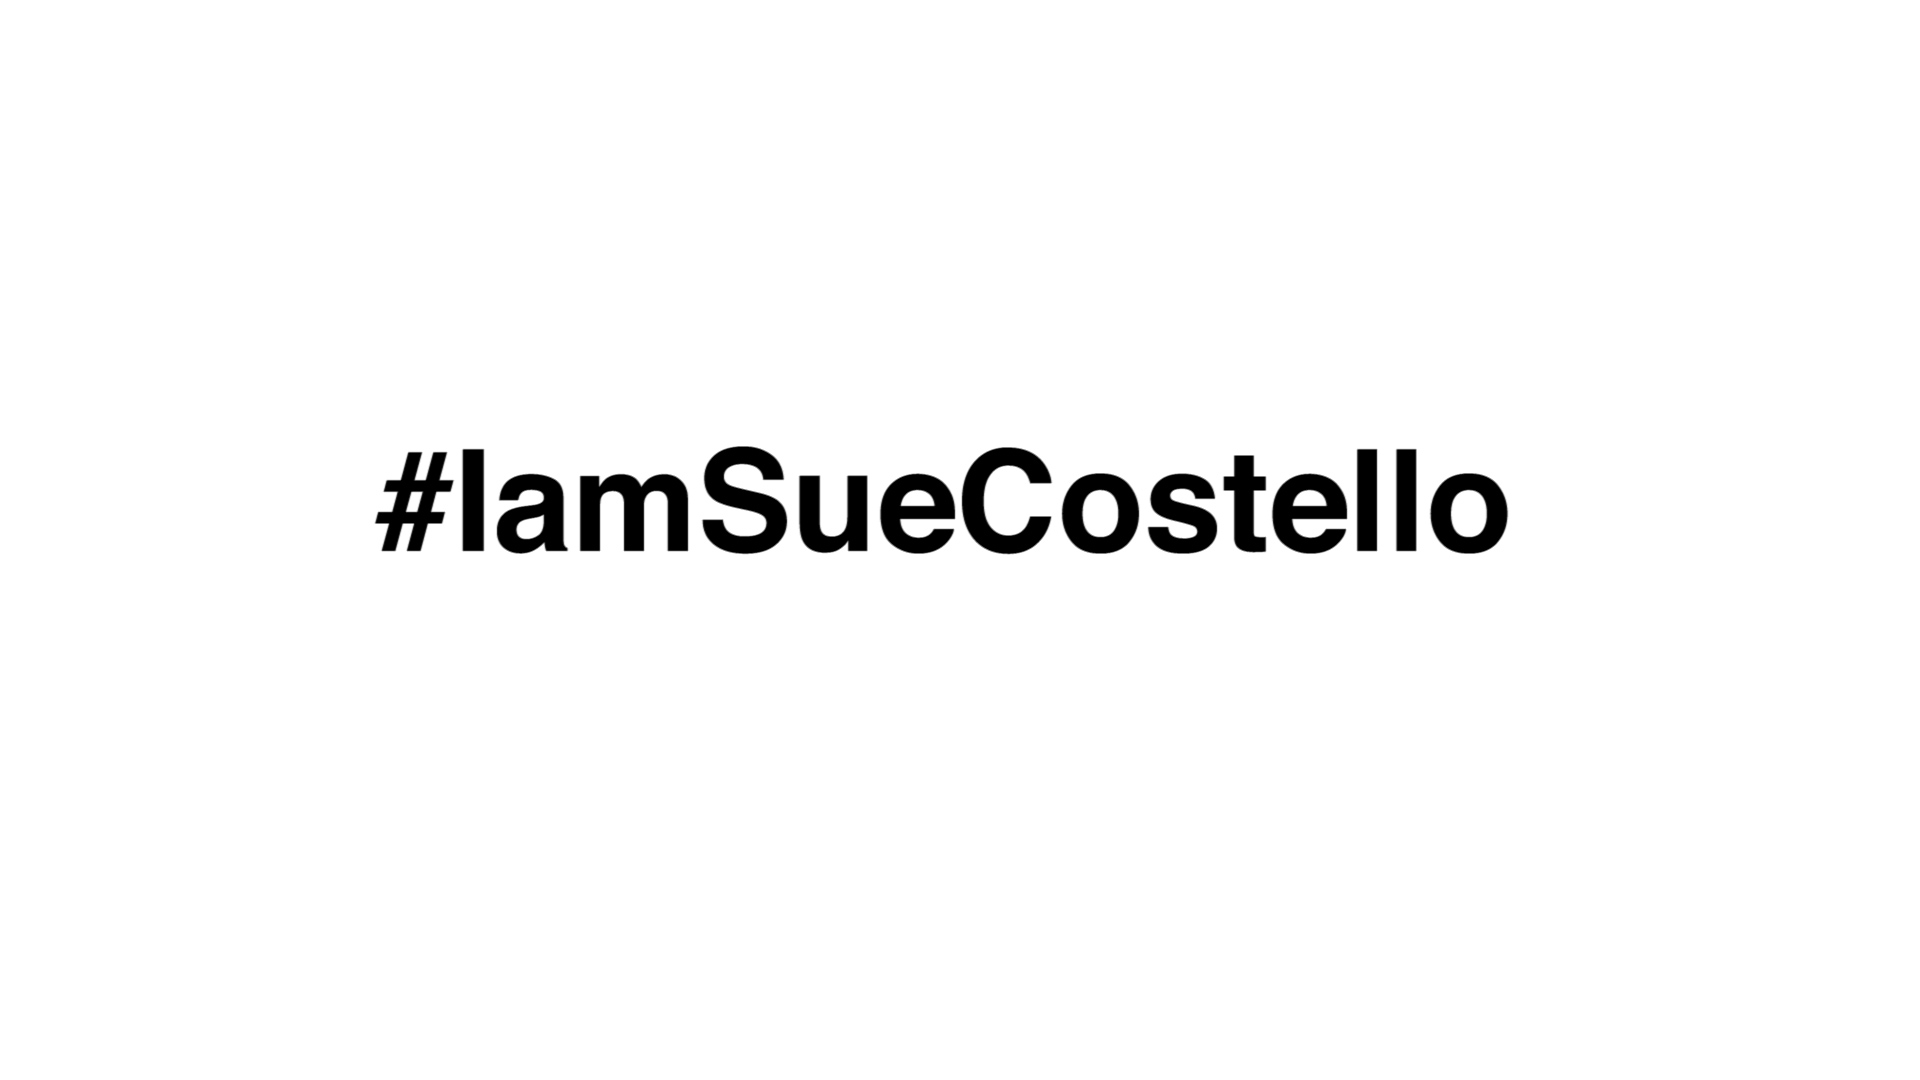 #IamSueCostello at Broadway Comedy Club Tuesday, March 28th